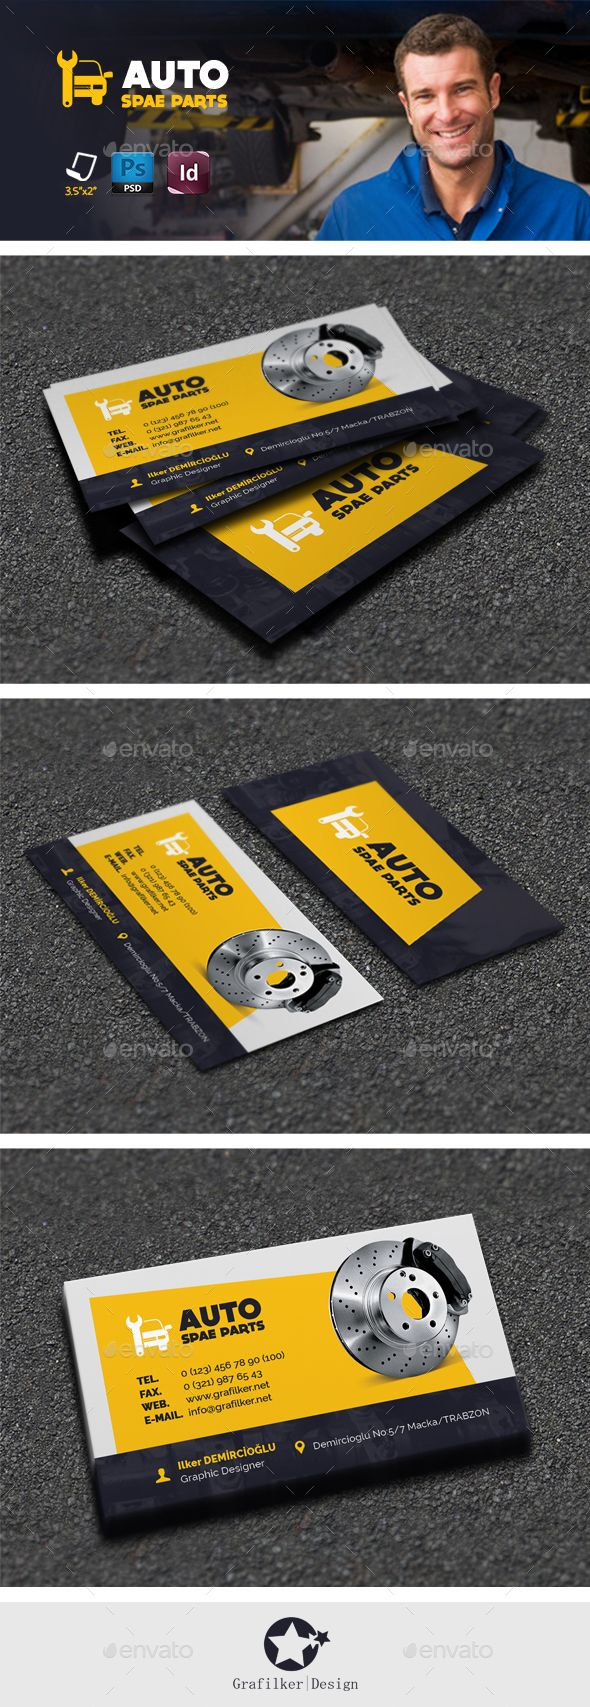 Auto Spare Part Business Card Template PSD #design #visitcard Download: http://graphicriver.net/item/auto-spare-part-business-card-templates/13113861?ref=ksioks